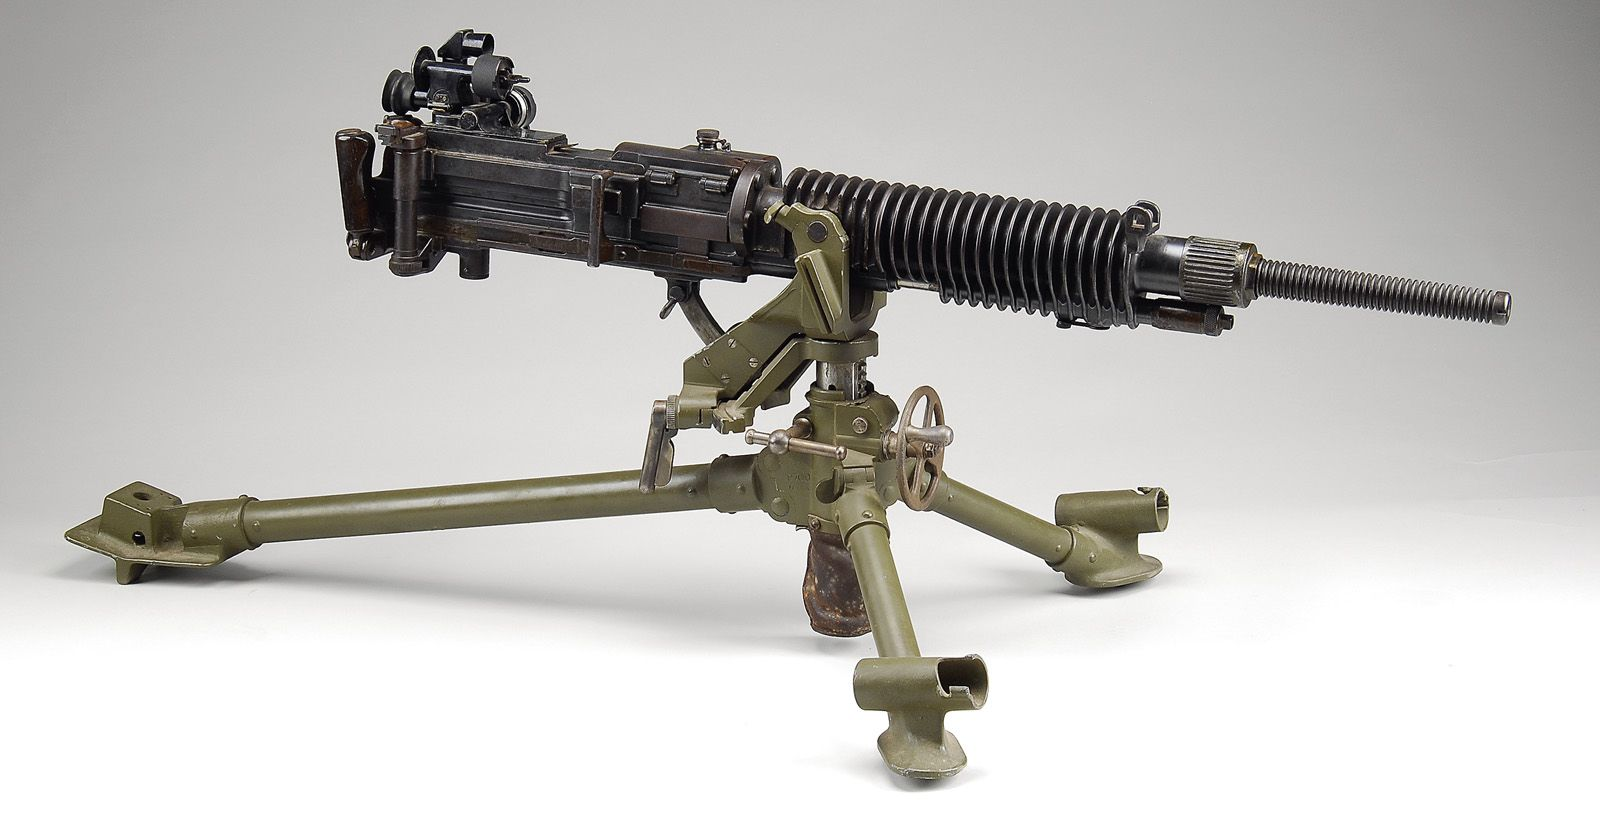 This is a Japanese Type 92 heavy machine gun, chambered in the